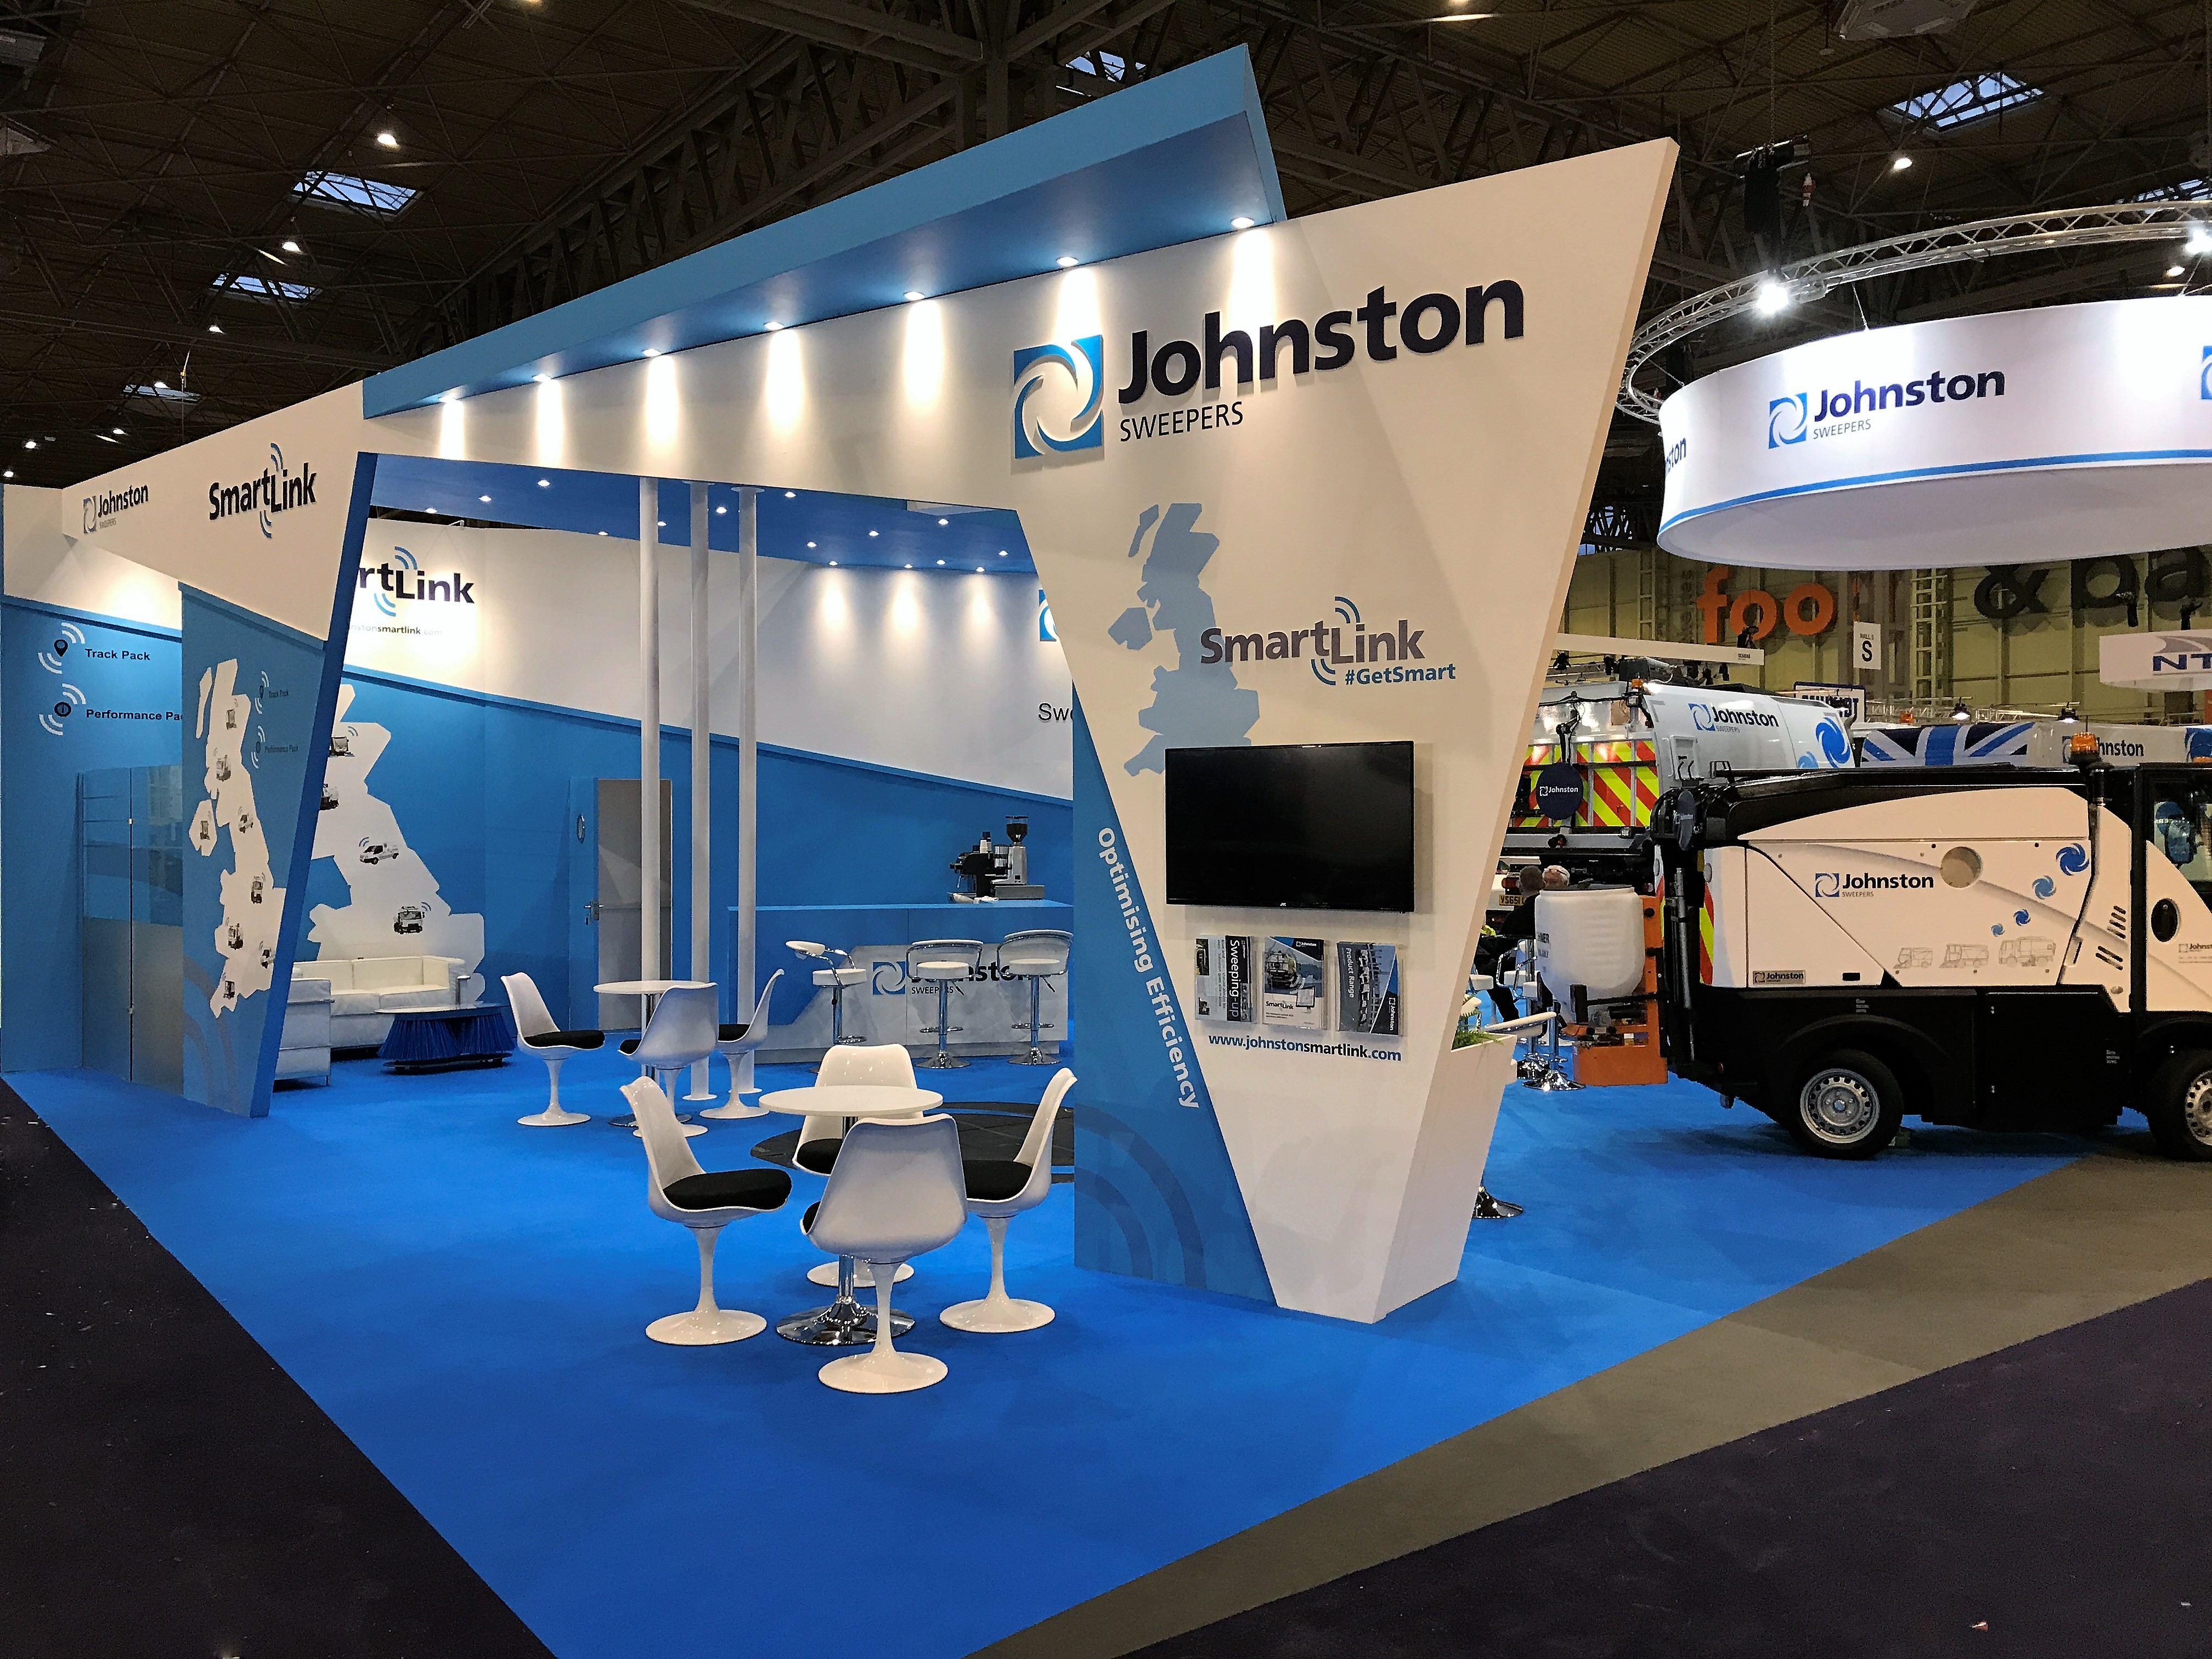 johnson_sweepers2